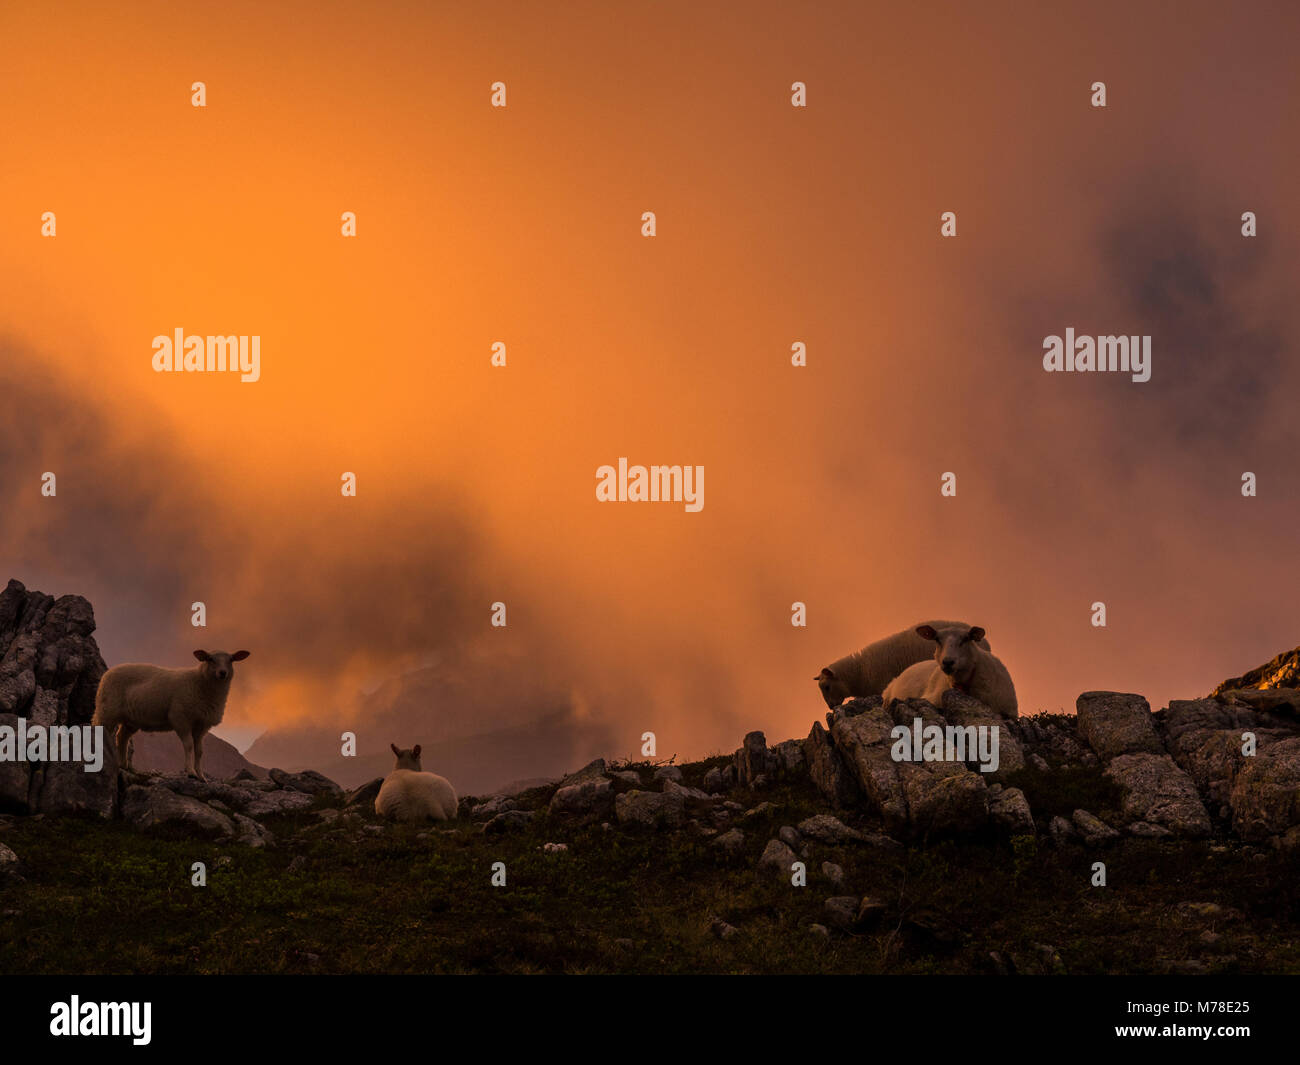 Sheeps in a foggy sunset - Stock Image